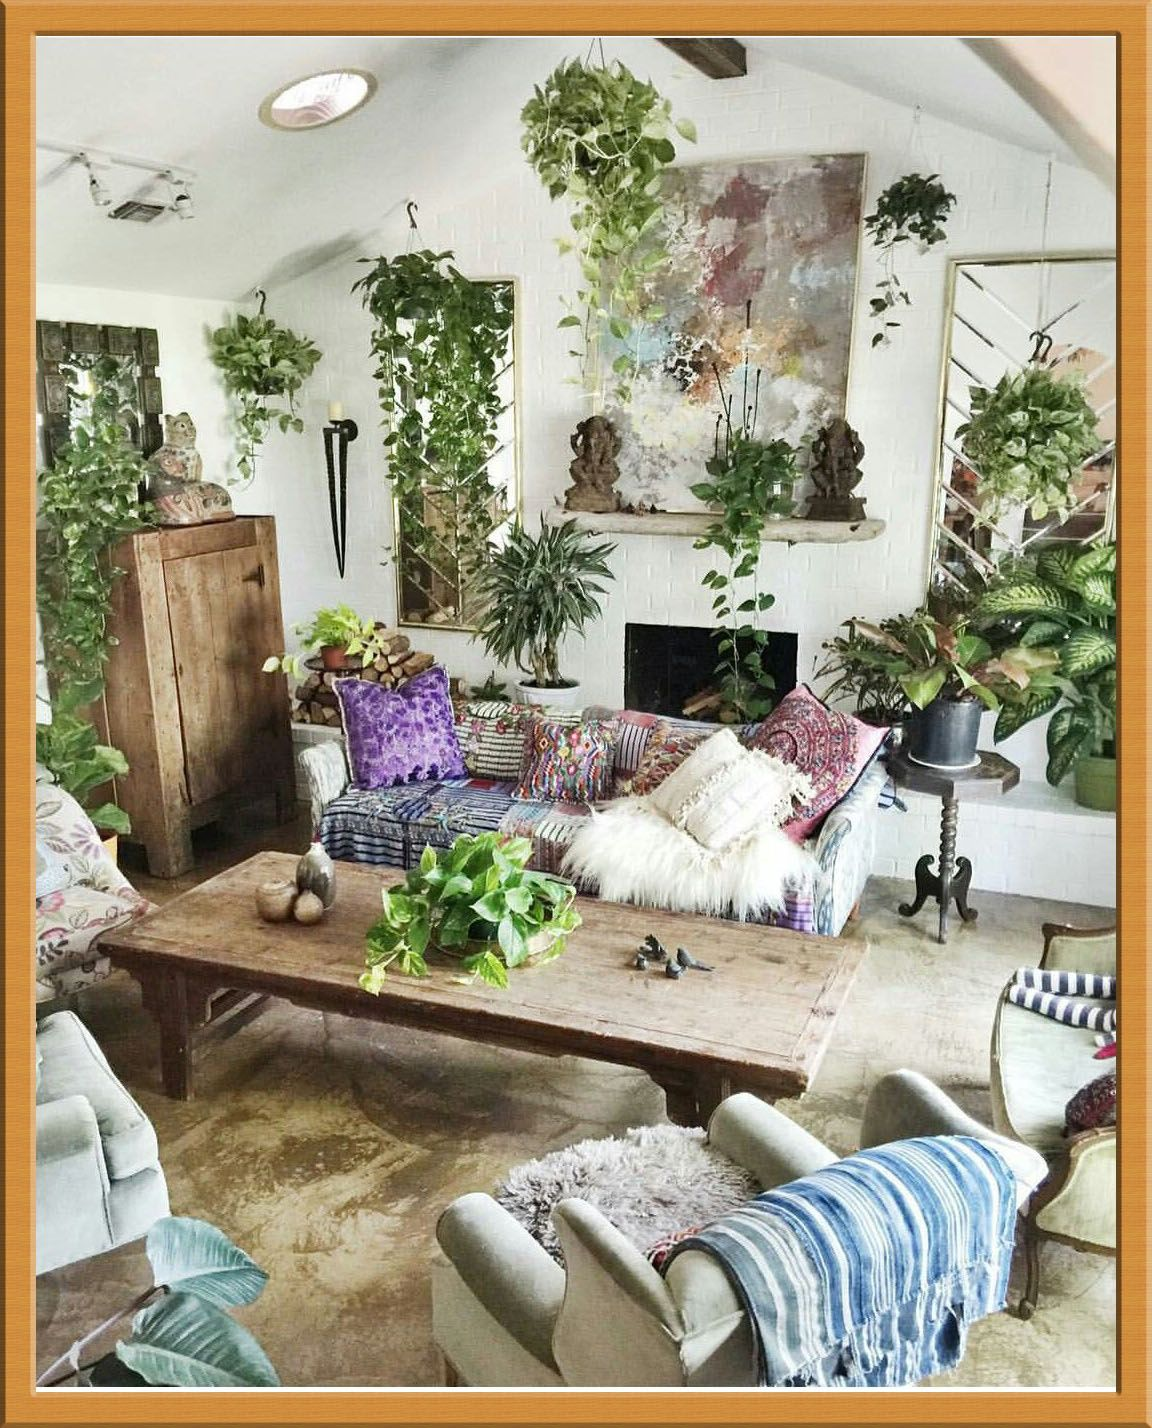 How To Buy (A) Bohemian Homedecor On A Tight Budget